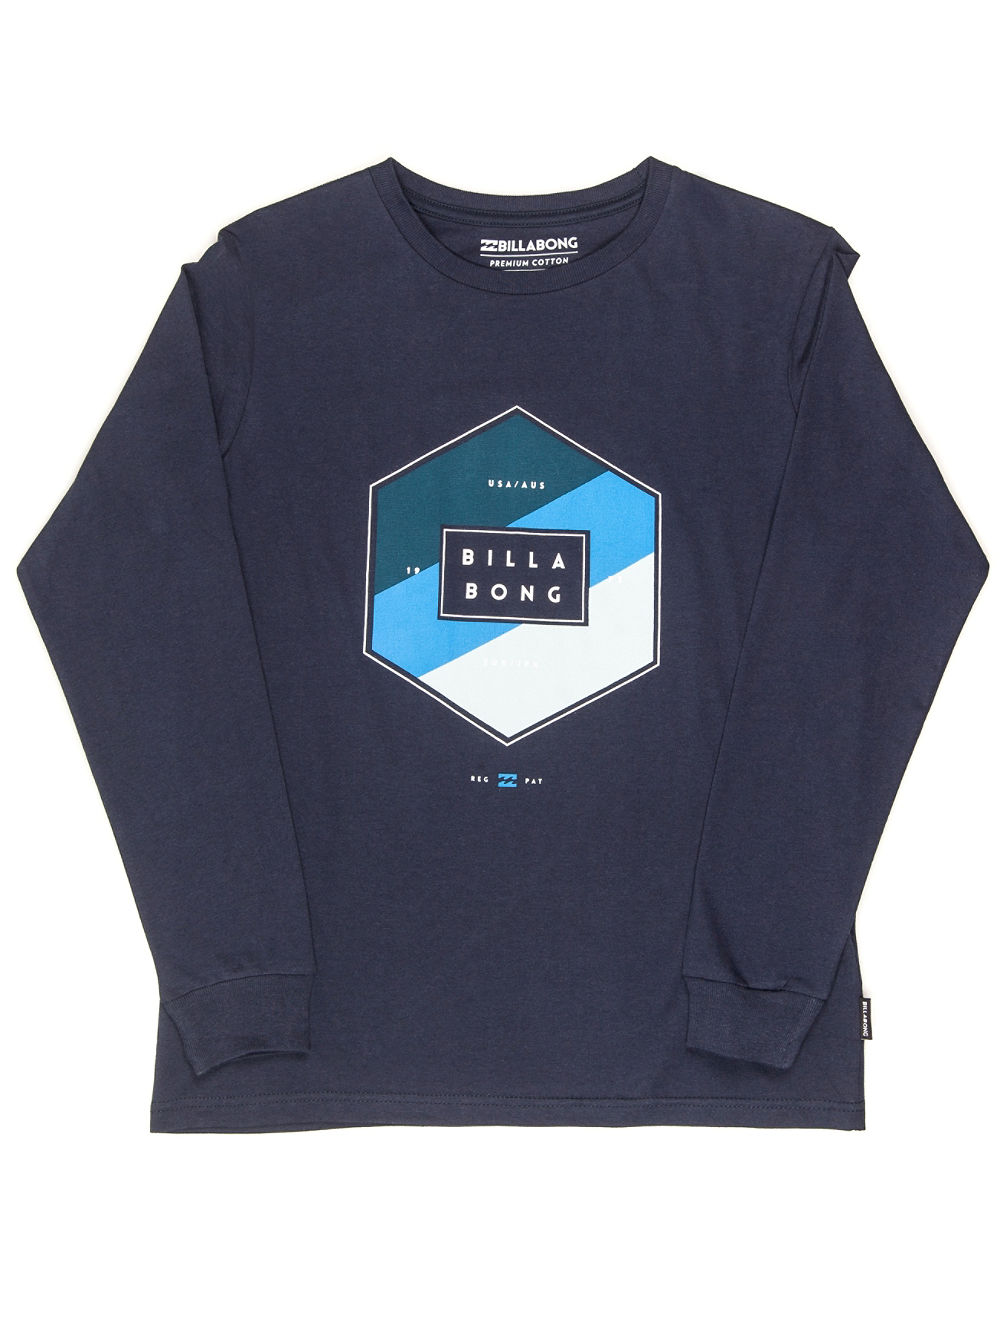 Access T-Shirt LS Boys